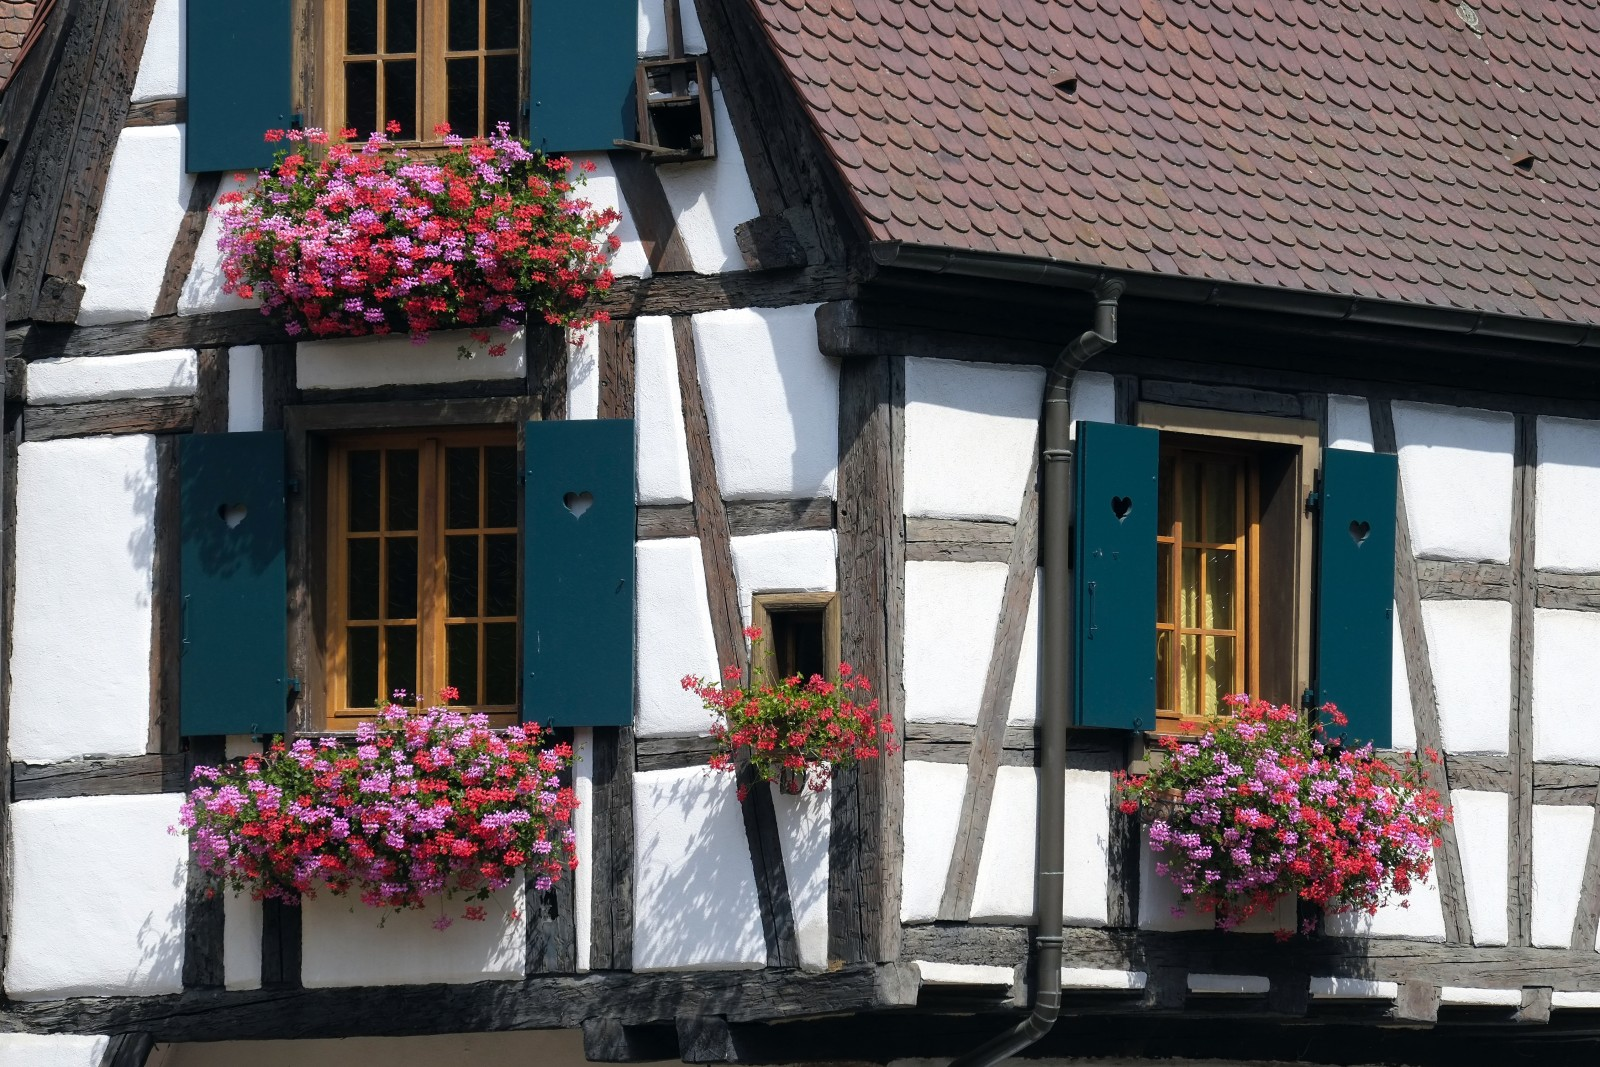 Alsace France photo credit: Massimo Battesini